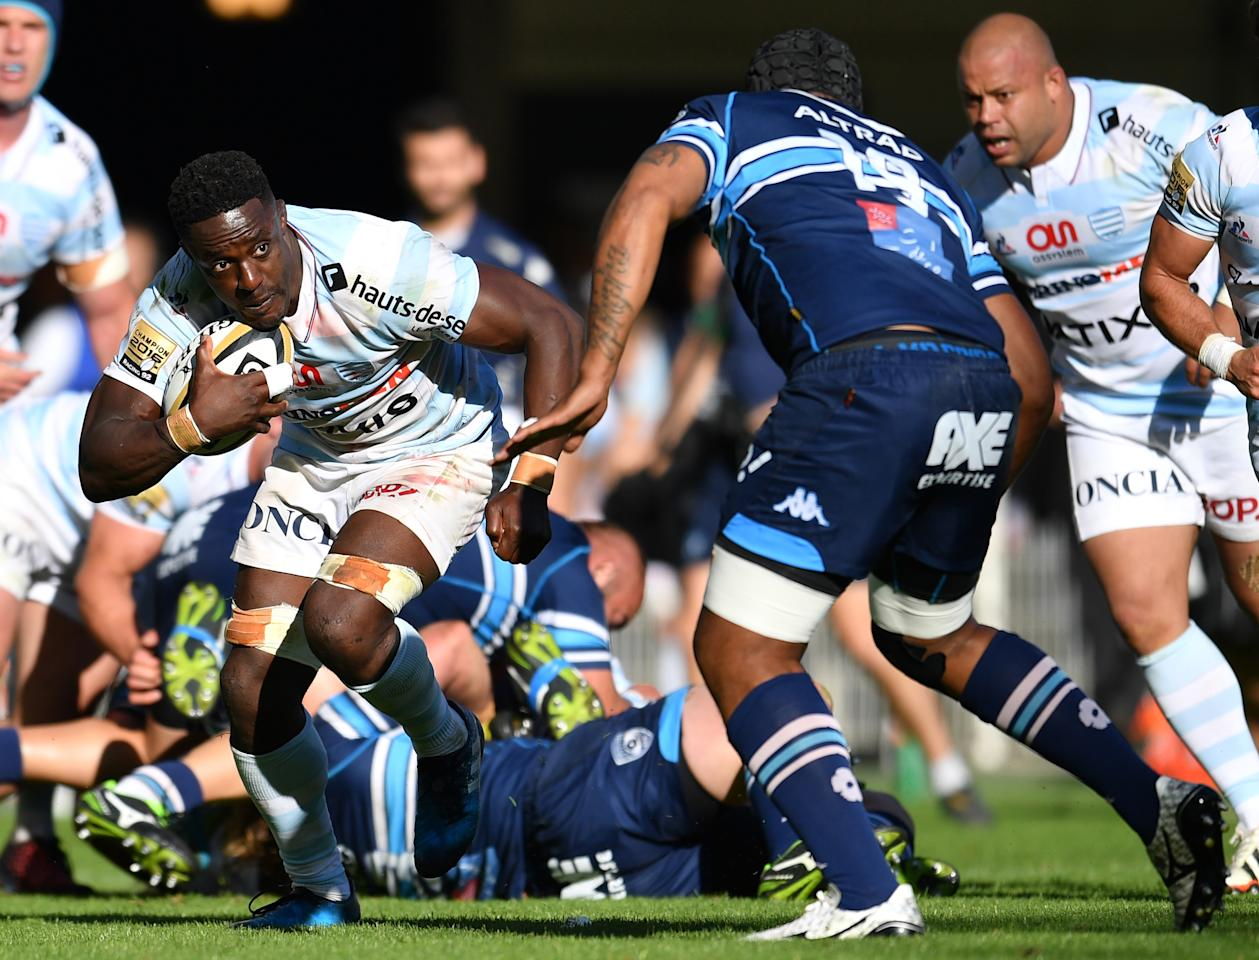 Racing 92's French flanker Yannick Nyanga (L) vies with Montpellier's Fijian flanker Akapusi qera (R) during the French Top 14 rugby union match between Montpellier and Racing 92 on May 20, 2017, at the Altrad stadium in Montpellier, southern France. (AFP Photo/PASCAL GUYOT)